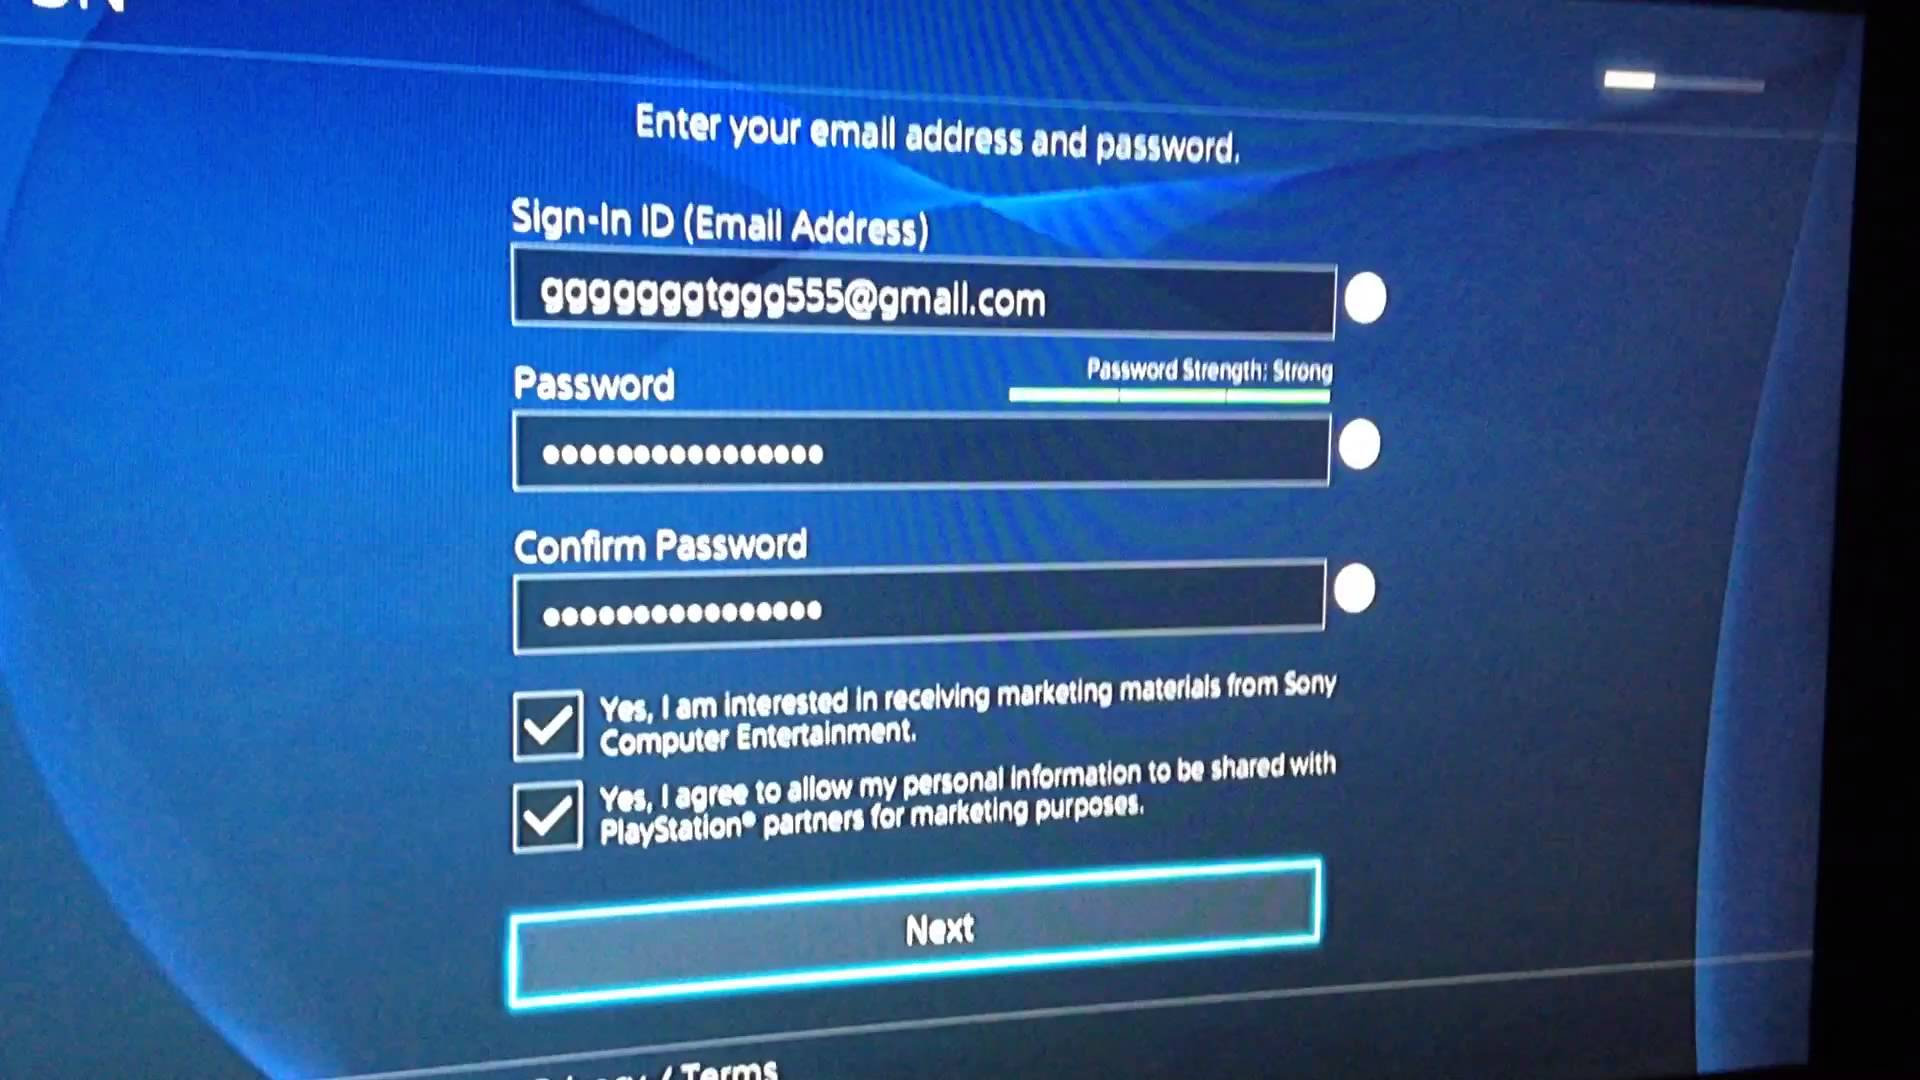 Ps4/ps4 free online Trick (Playstation plus trick)how to get